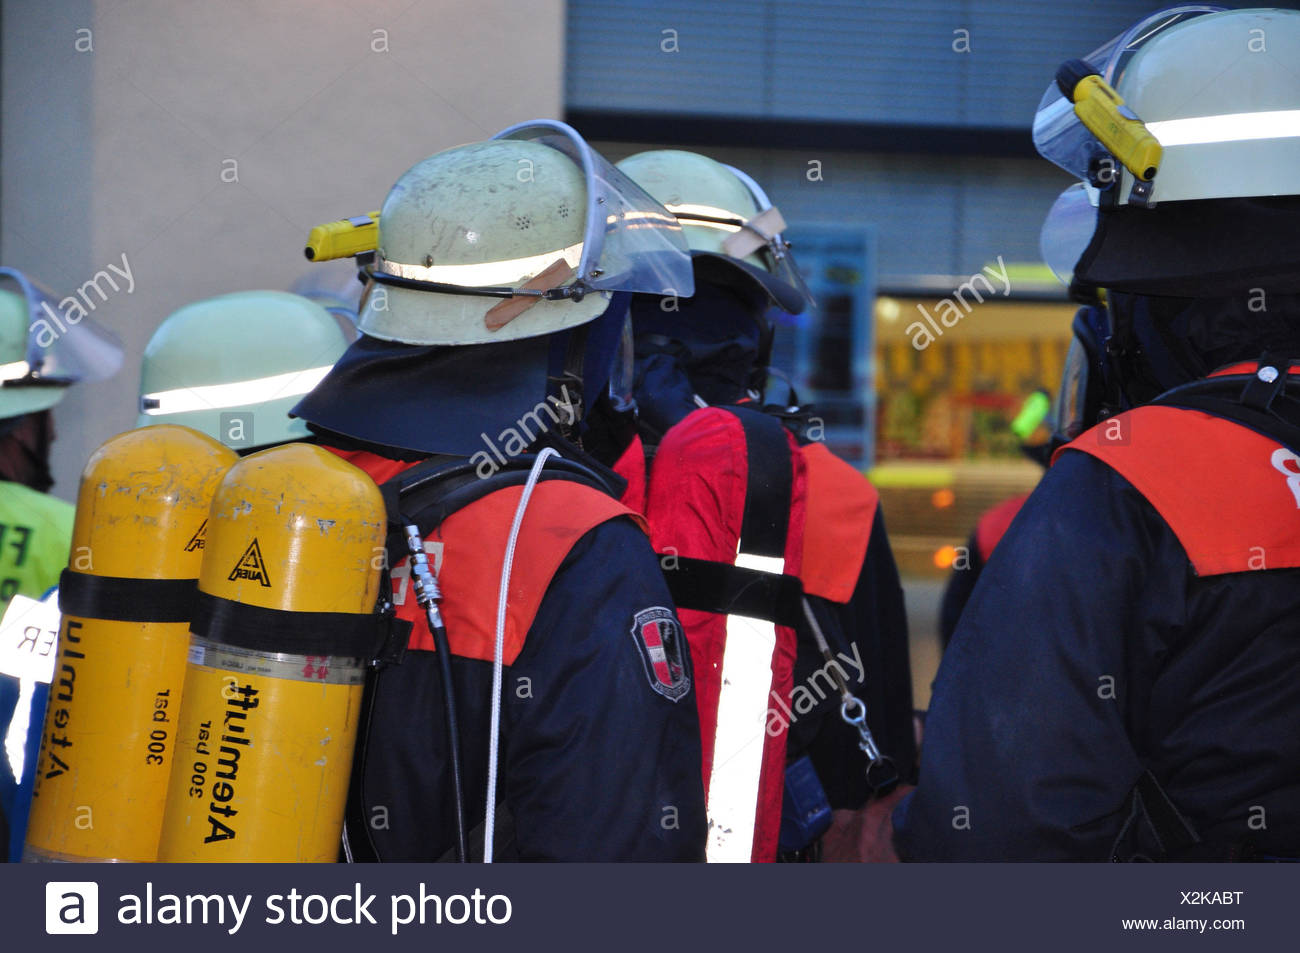 Firefighters,respiration protection,fire brigade,rescue,delete,fire,fire,occupation,life rescue,human rescue,person,helmets,people,men, - Stock Image